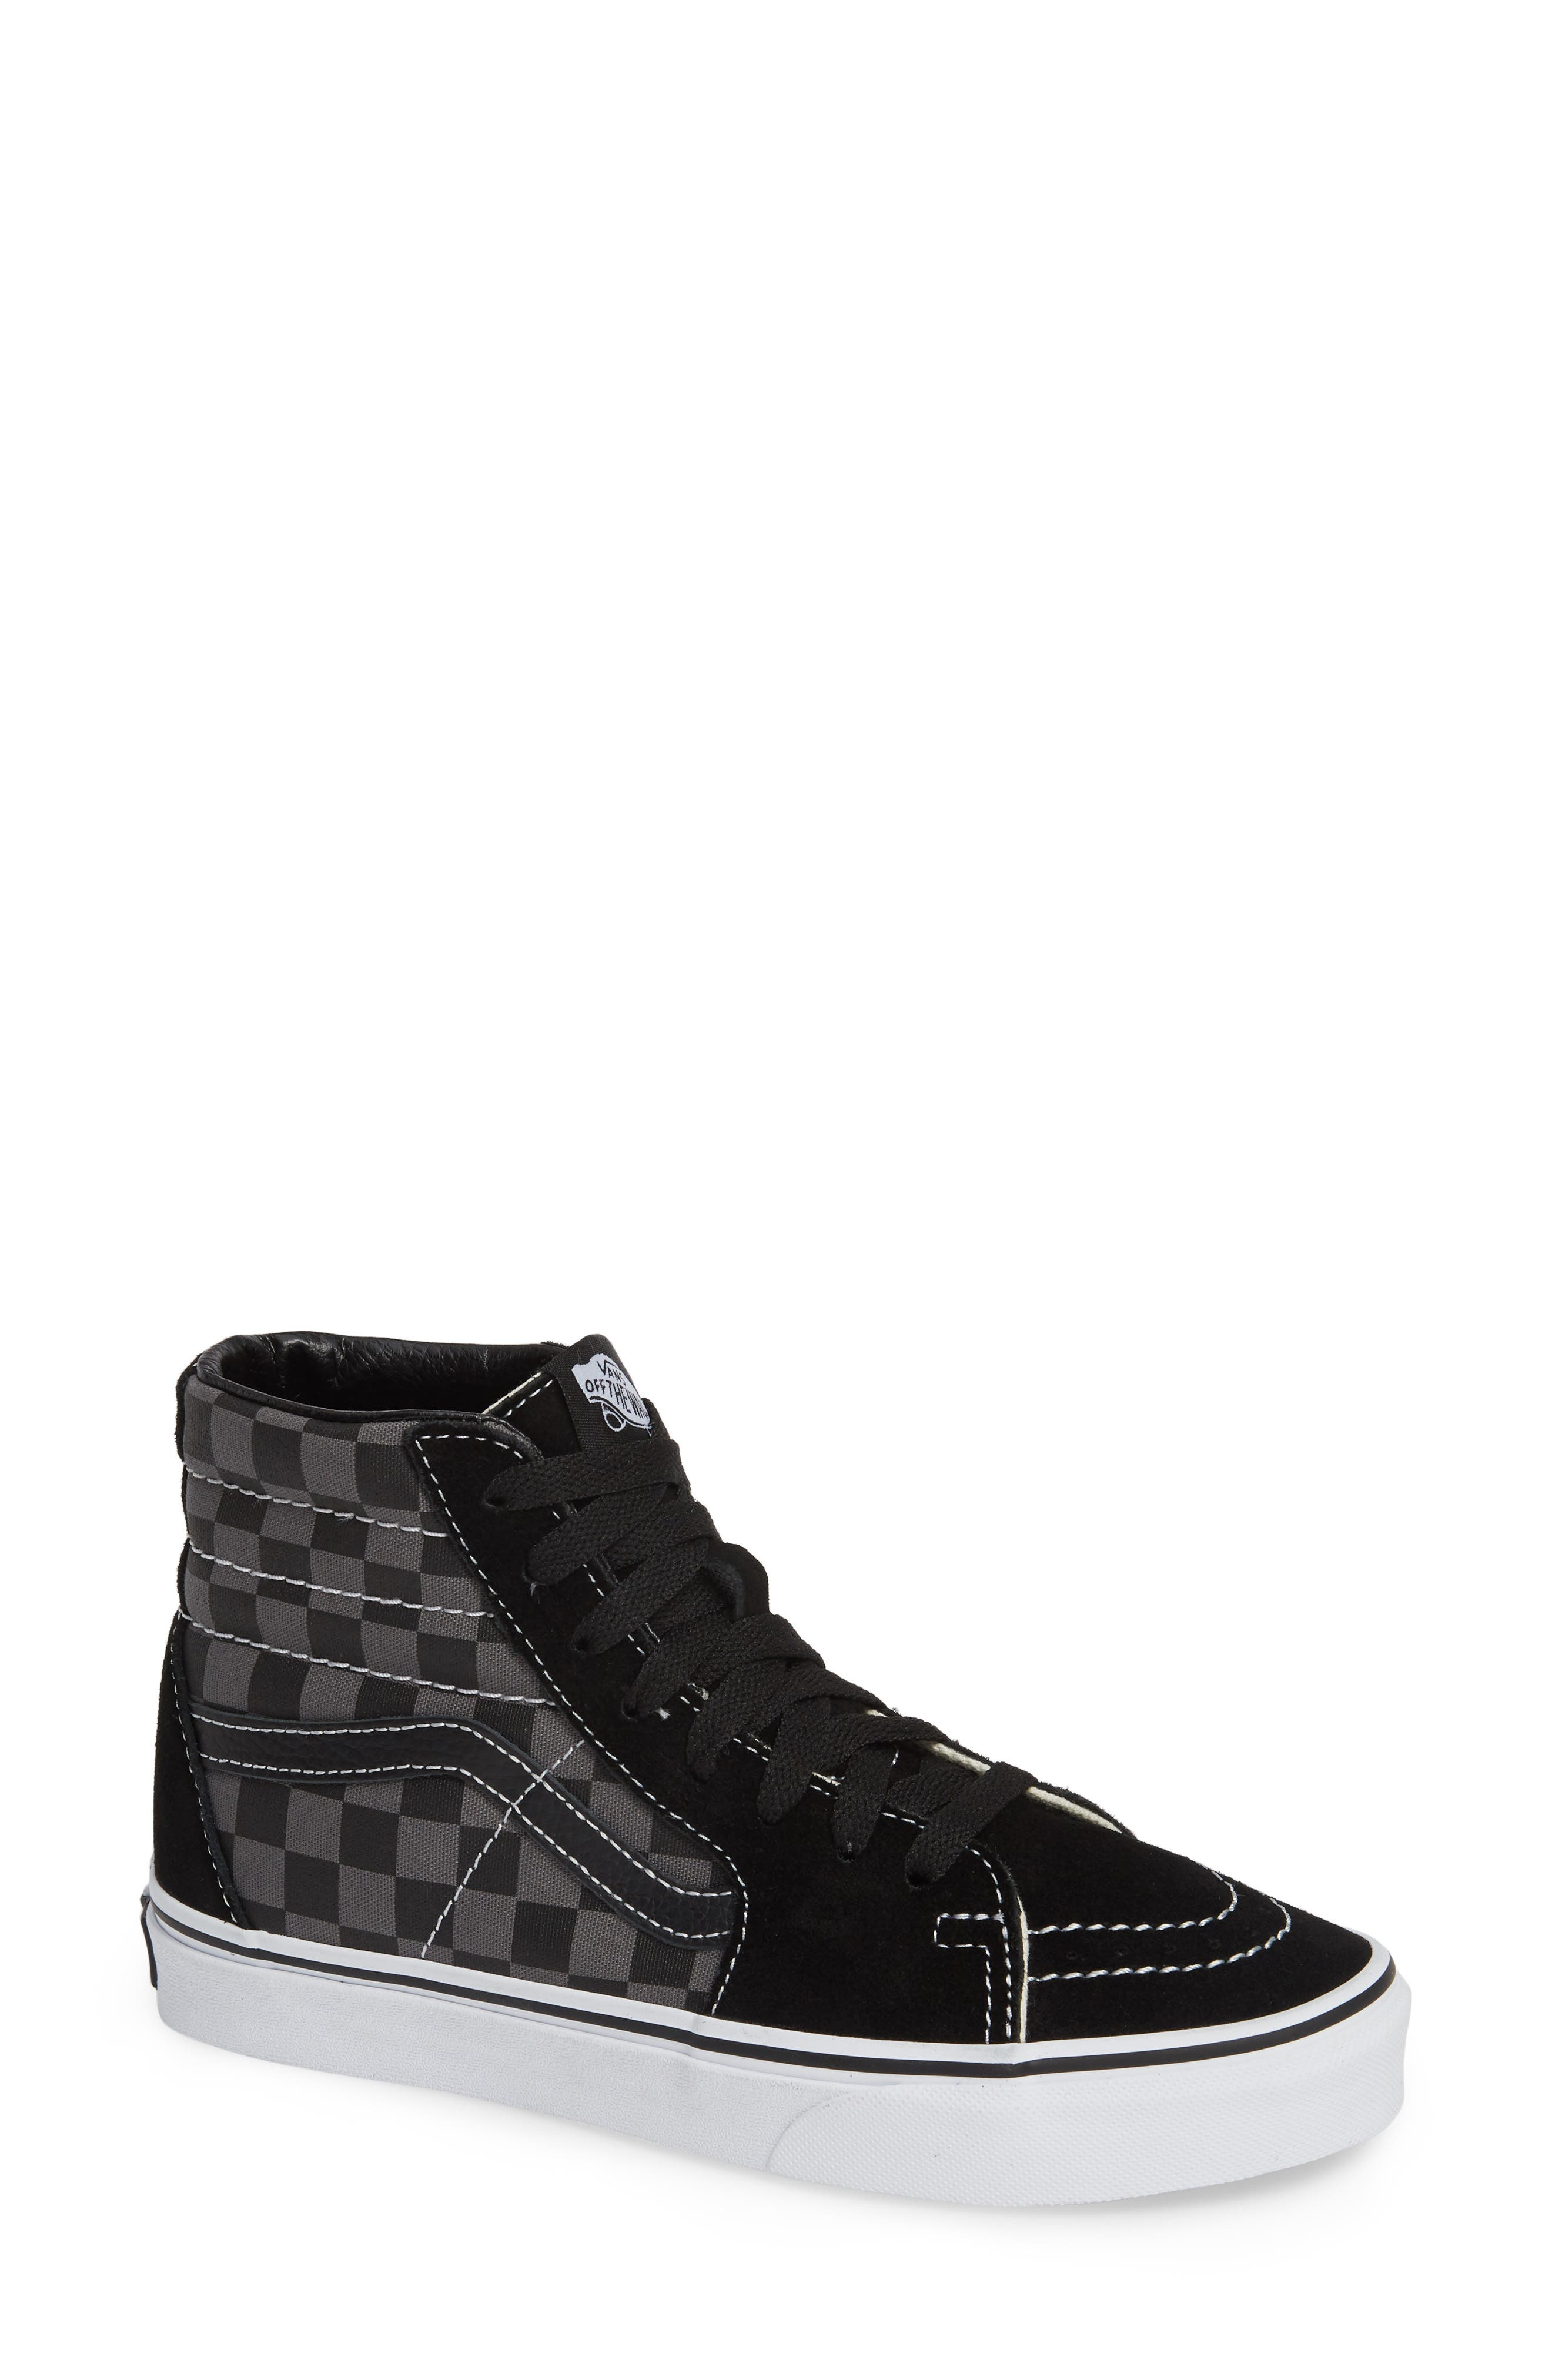 Sk8-Hi Checker Sneaker,                         Main,                         color, BLACK/ PEWTER CHECKERBOARD